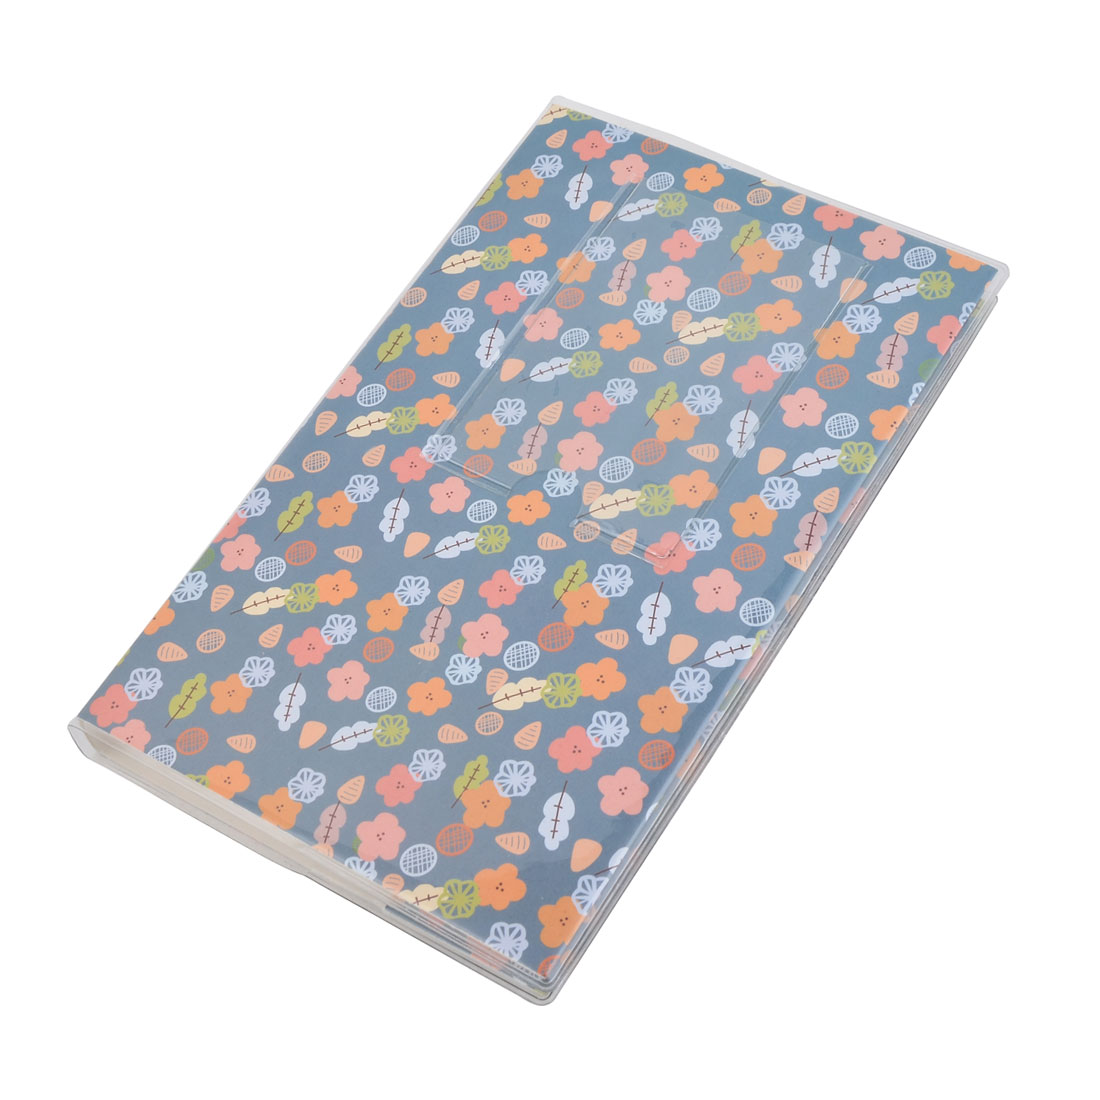 Household Birthday Plastic Floral Print Photo Picture Memo Stamp Holder Album